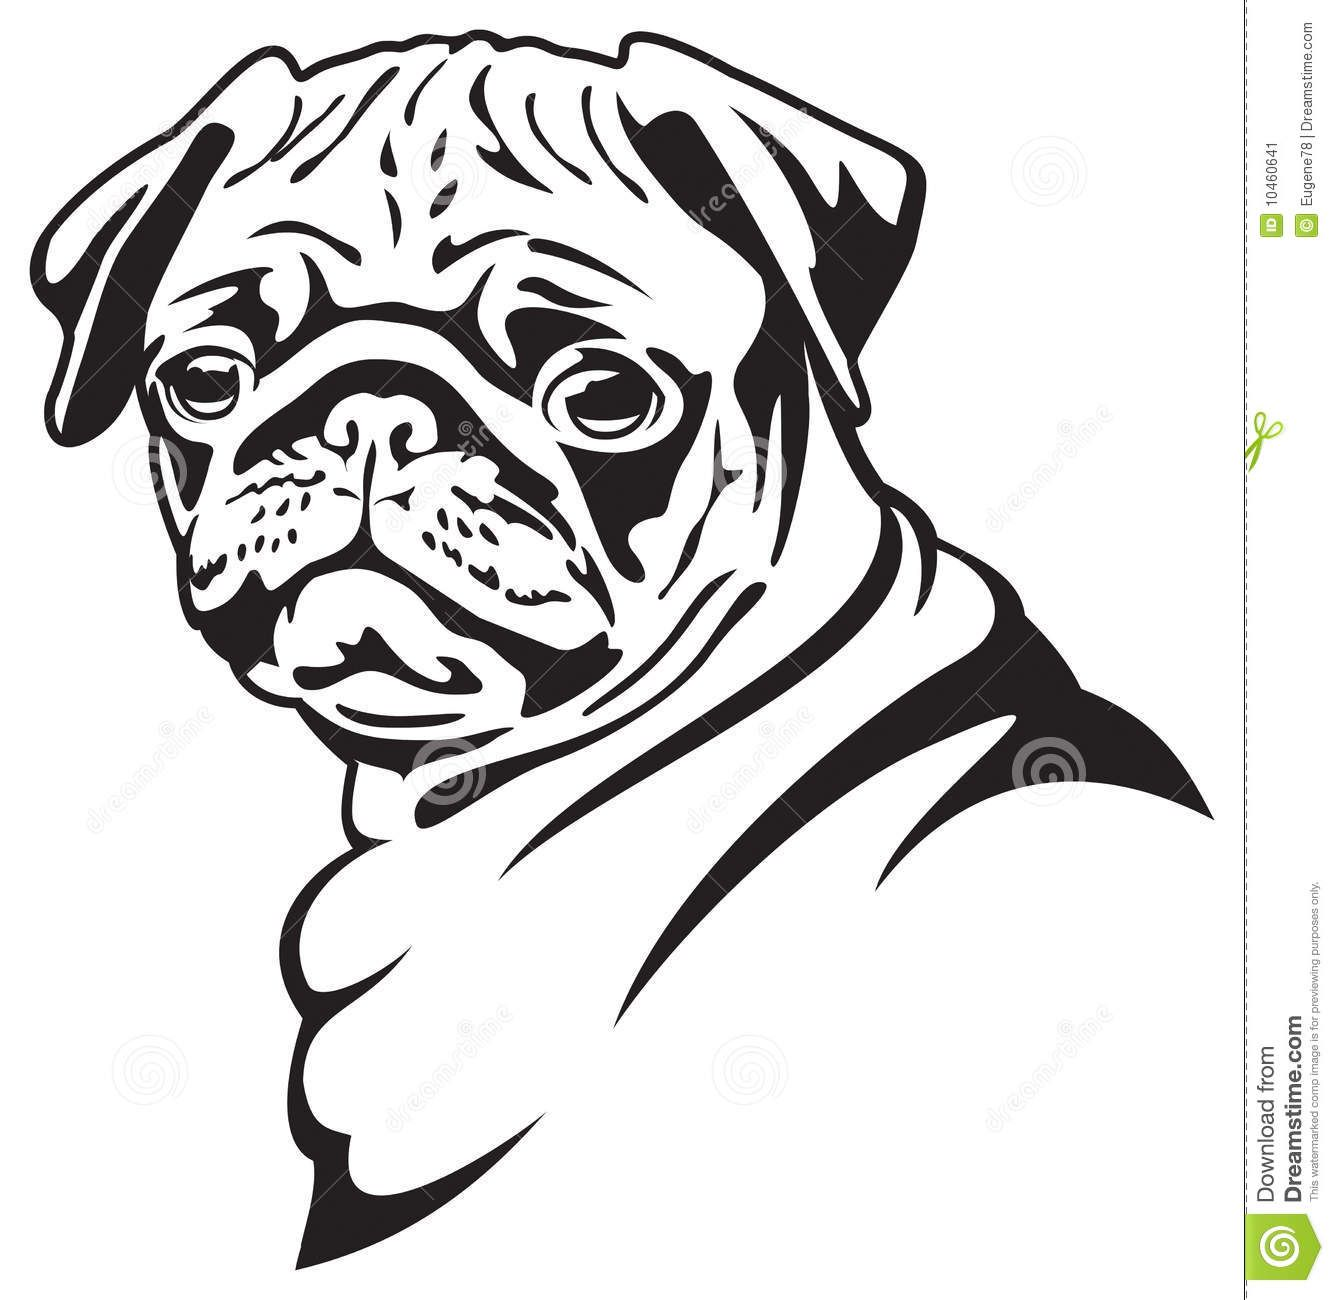 Contour Line Drawing Of A Dog : Dog pug download from over million high quality